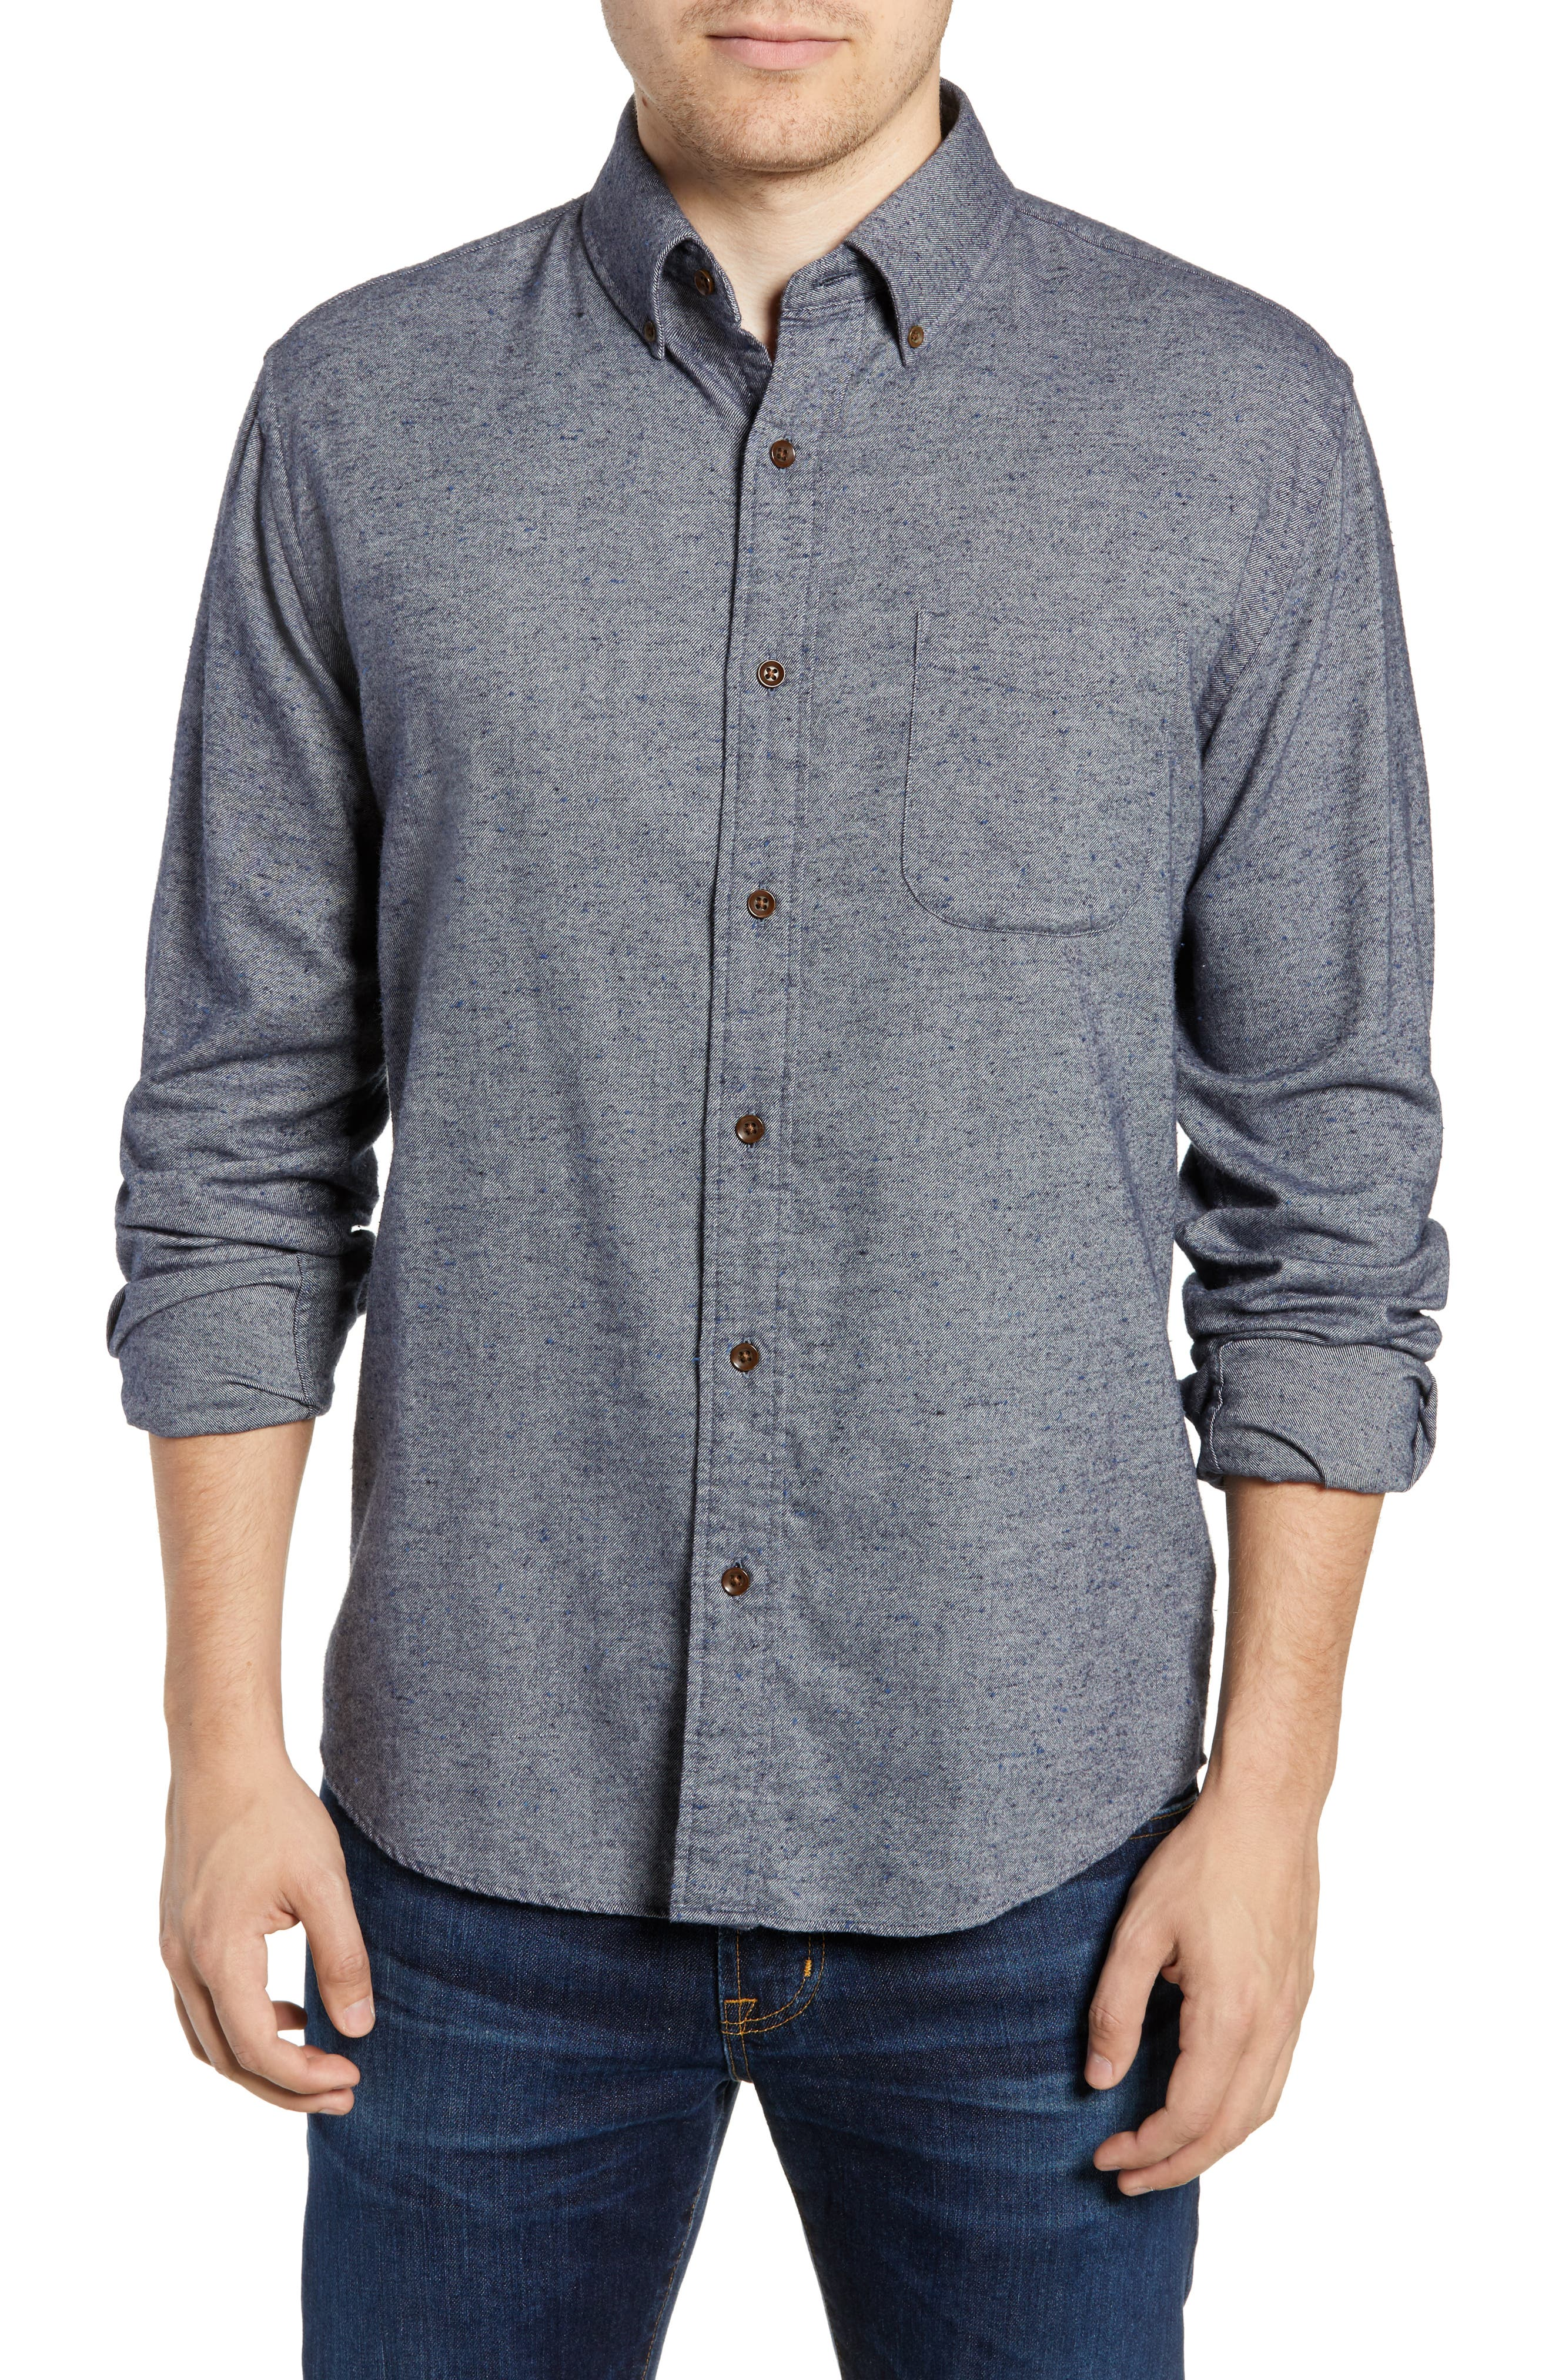 Pacific Regular Fit Sport Shirt,                         Main,                         color, NAVY